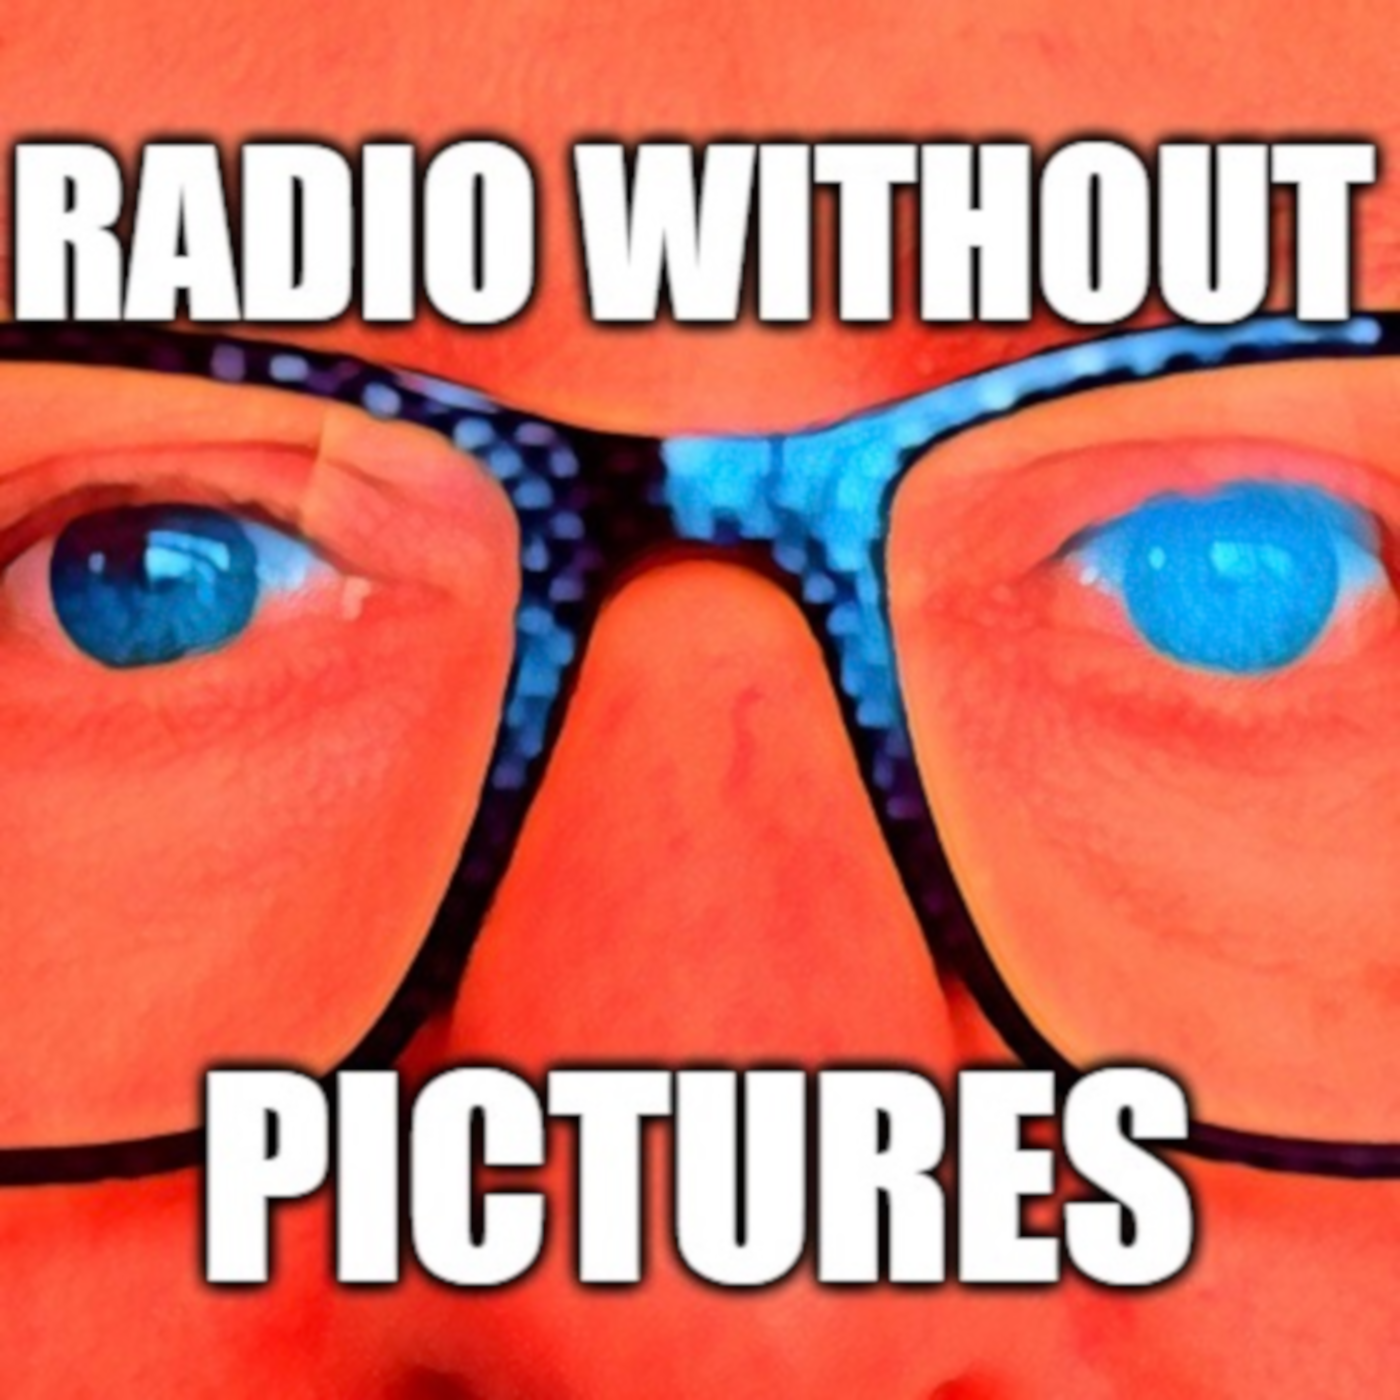 Radio without Pictures - Darren Ludlow-30-07-2018